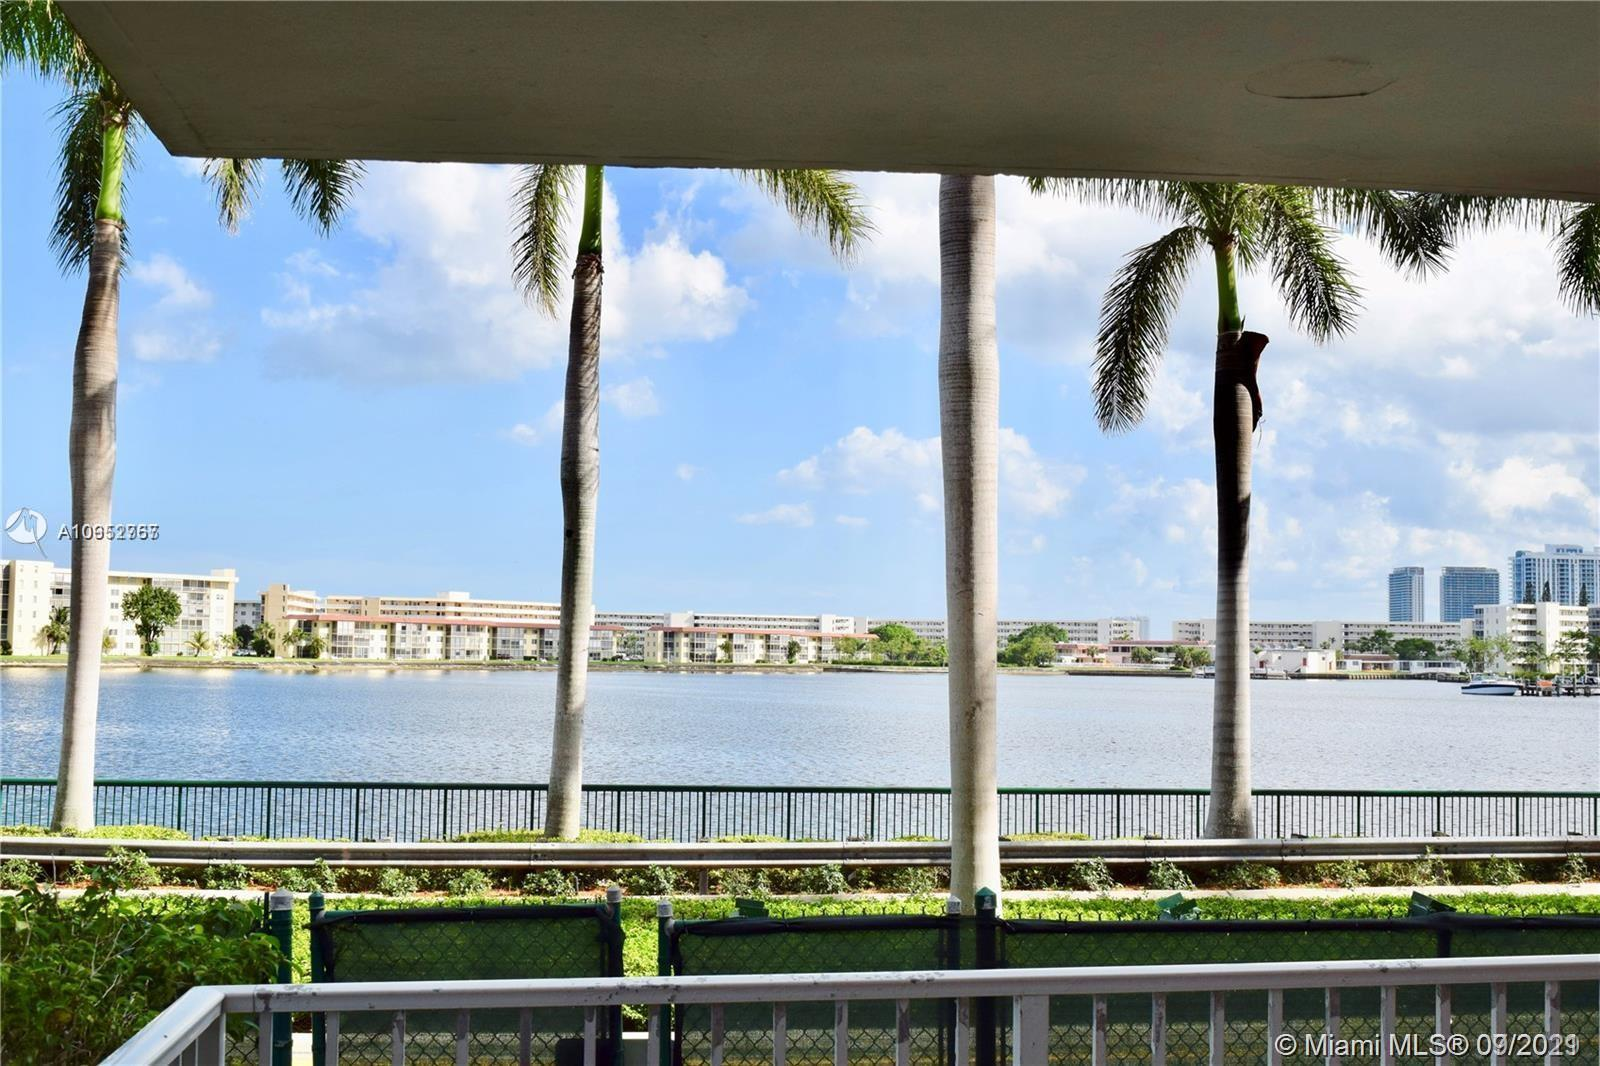 Completely remodeled large 2beds/2baths condo in Admirals Port in the prime location of Aventura. Be